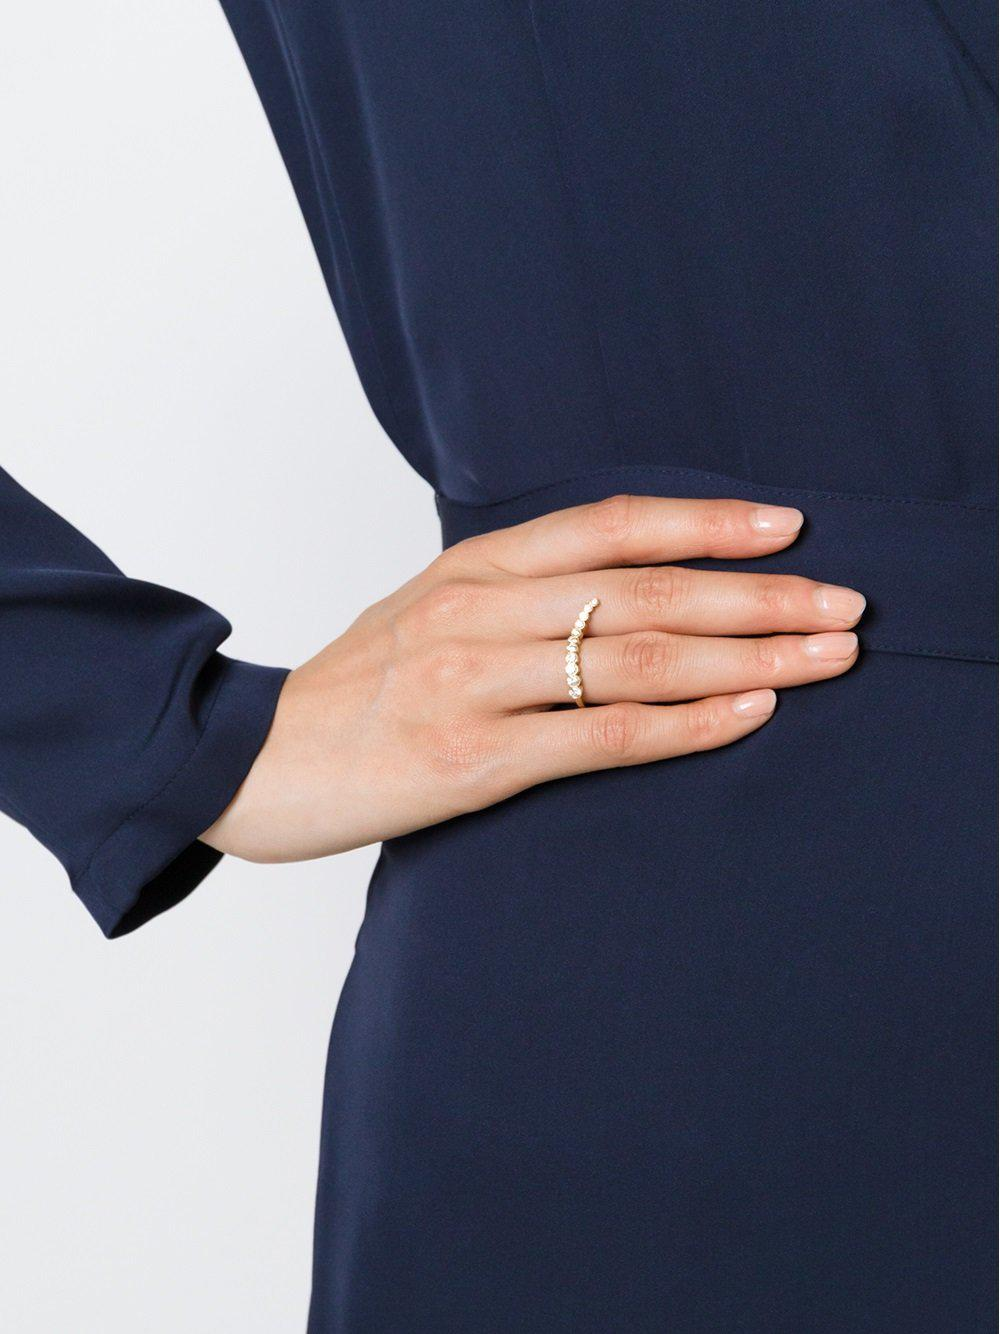 Sophie Bille Brahe 'moon Stairs' Ring in Metallic